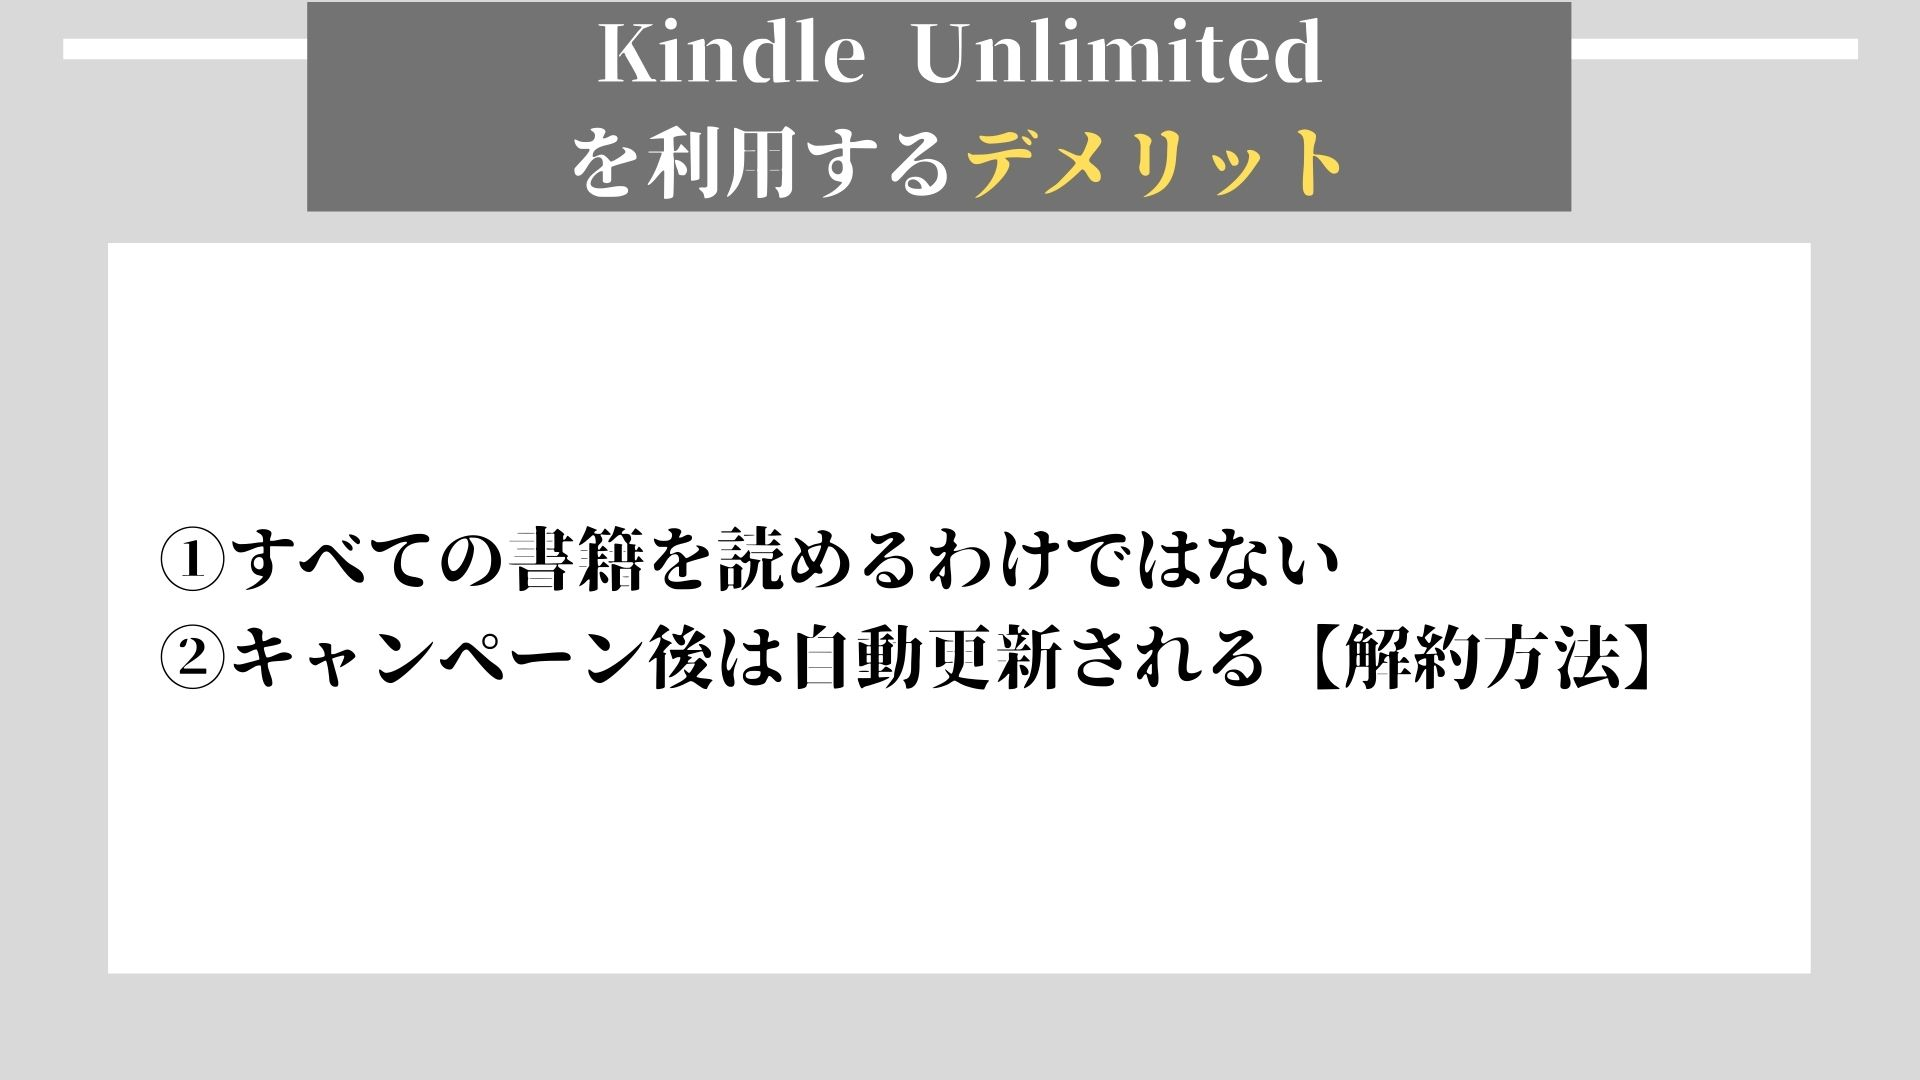 Kindle Unlimited デメリット